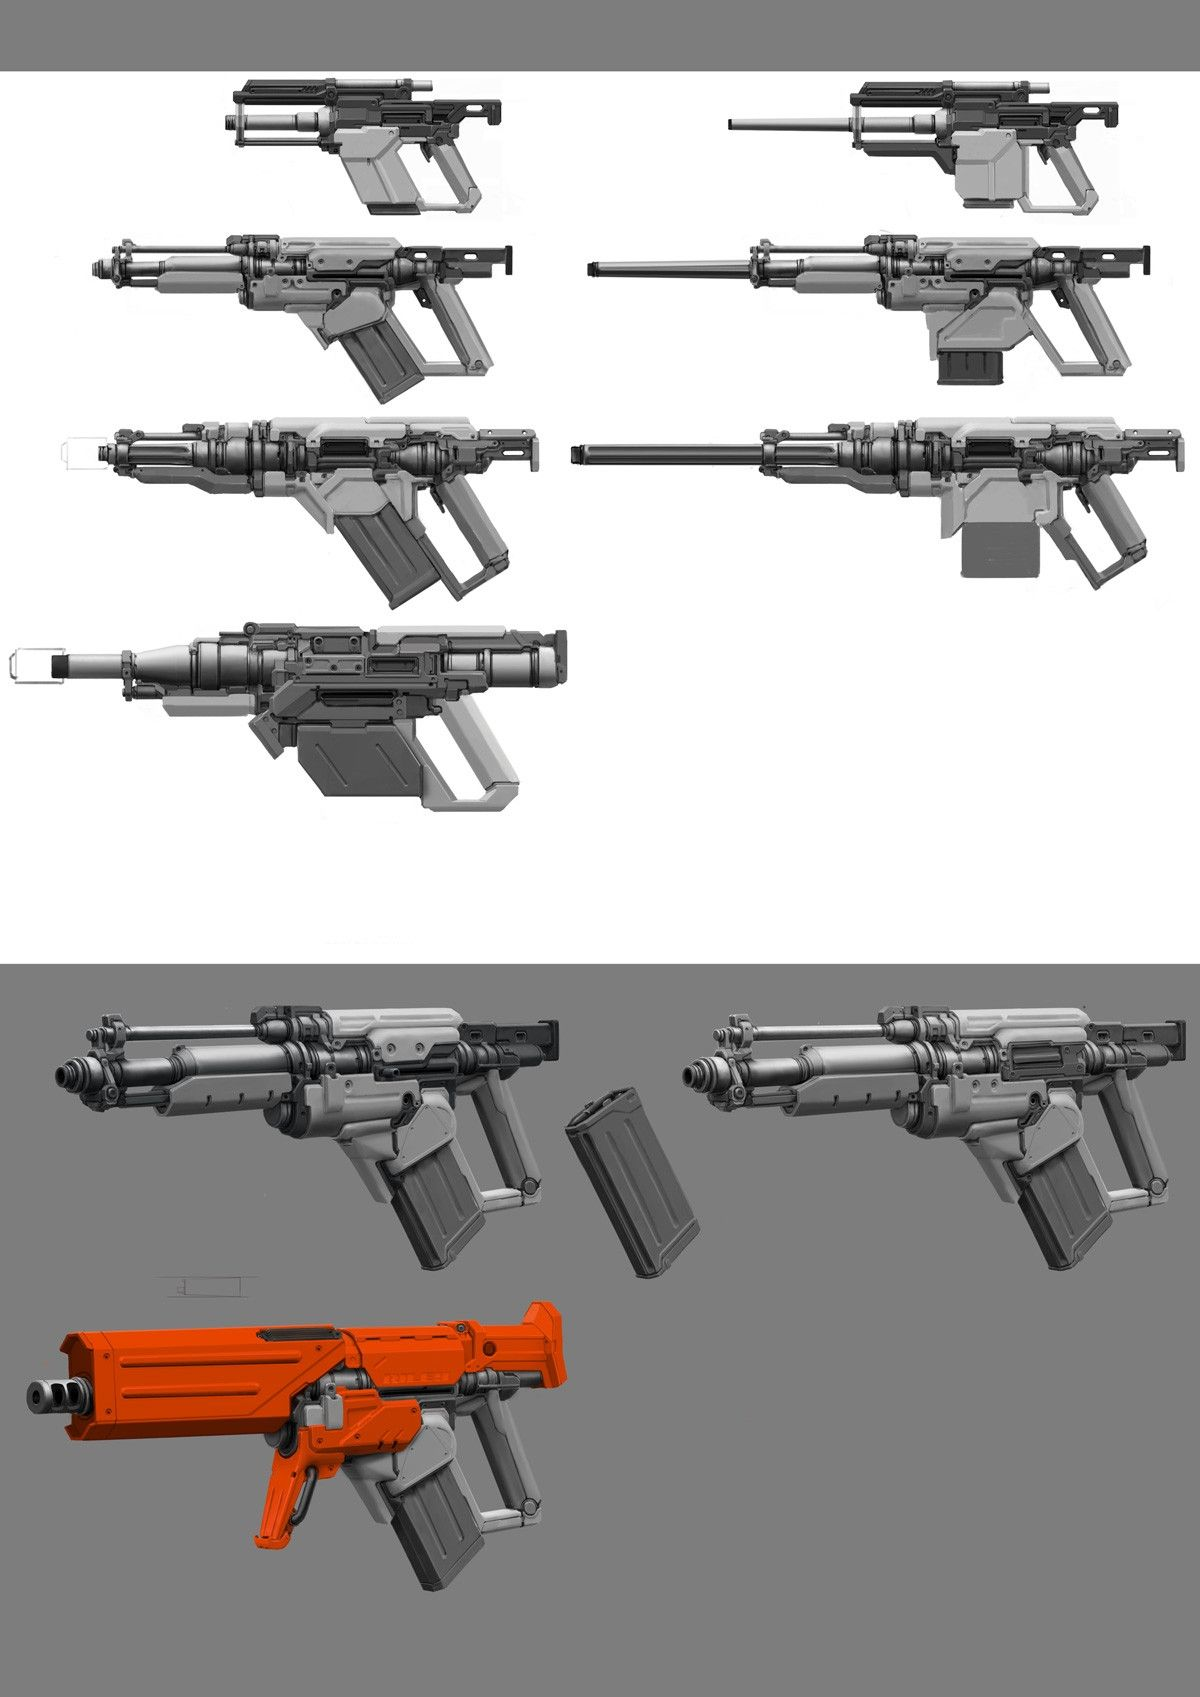 The Specialist Blaster Concepts | Guns and Props | Pinterest | Guns ...